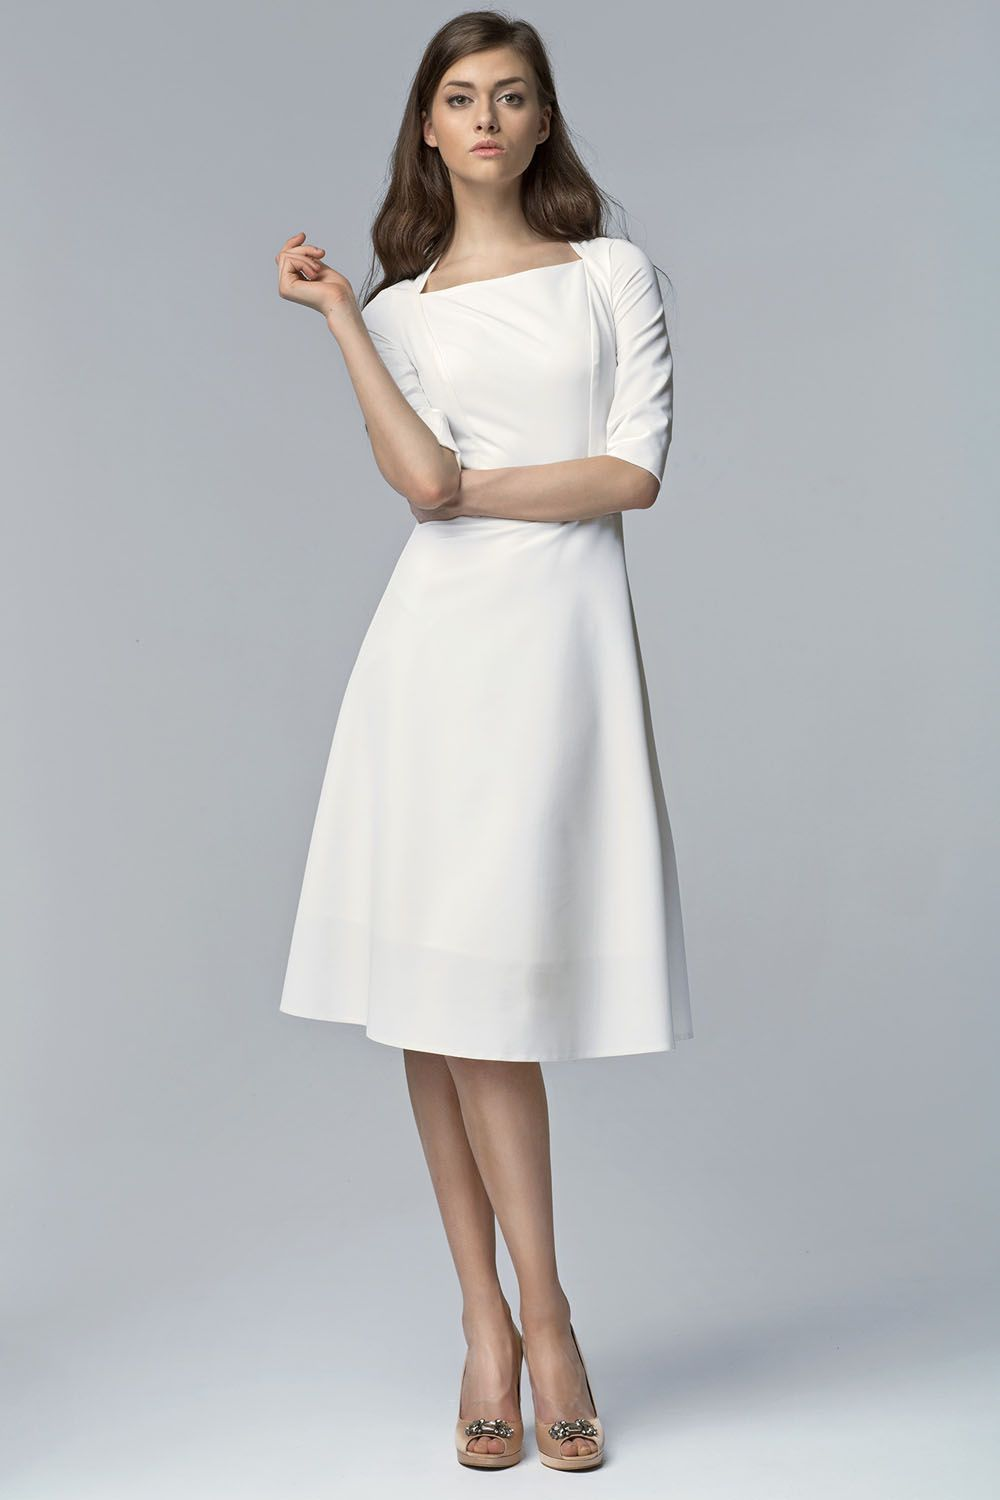 Ecru Dress with Square Neckline and Seam Bodice #zivilhochzeitskleider Ecru Dress with Square Neckline and Seam Bodice #zivilhochzeitskleider Ecru Dress with Square Neckline and Seam Bodice #zivilhochzeitskleider Ecru Dress with Square Neckline and Seam Bodice #zivilhochzeitskleider Ecru Dress with Square Neckline and Seam Bodice #zivilhochzeitskleider Ecru Dress with Square Neckline and Seam Bodice #zivilhochzeitskleider Ecru Dress with Square Neckline and Seam Bodice #zivilhochzeitskleider Ecr #zivilhochzeitskleider